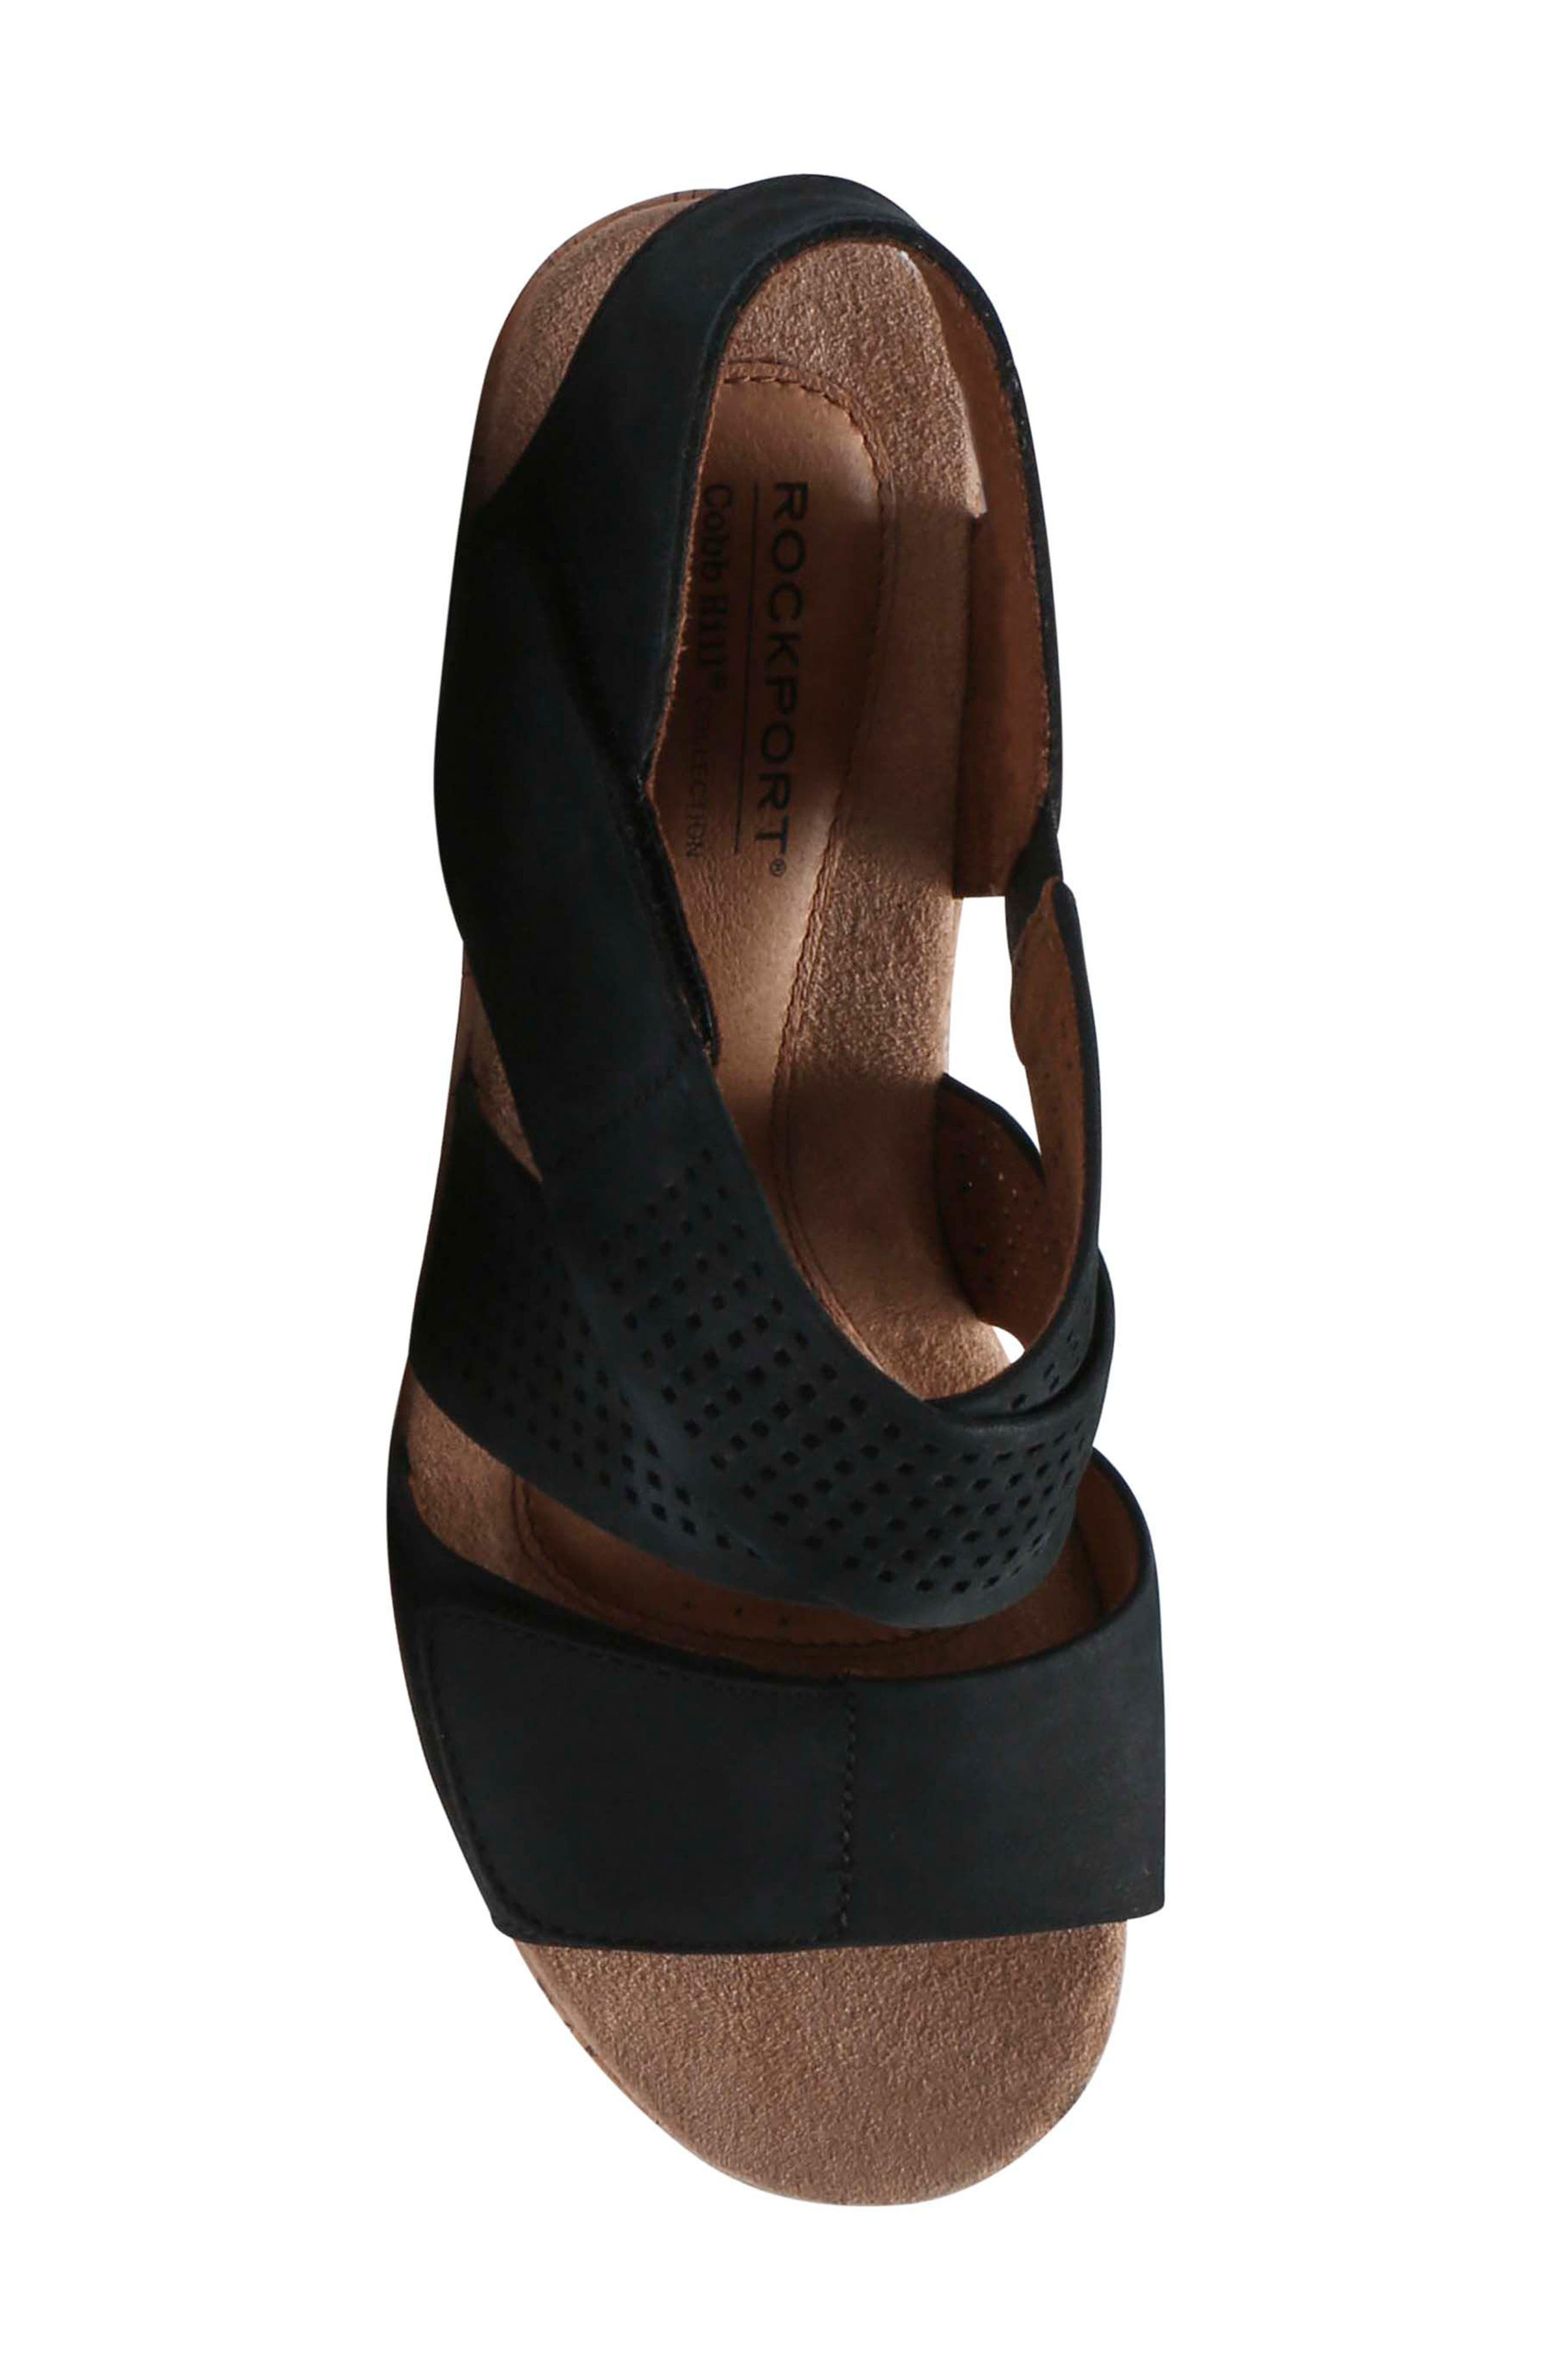 Janna Cross Strap Wedge Sandal,                             Alternate thumbnail 5, color,                             001